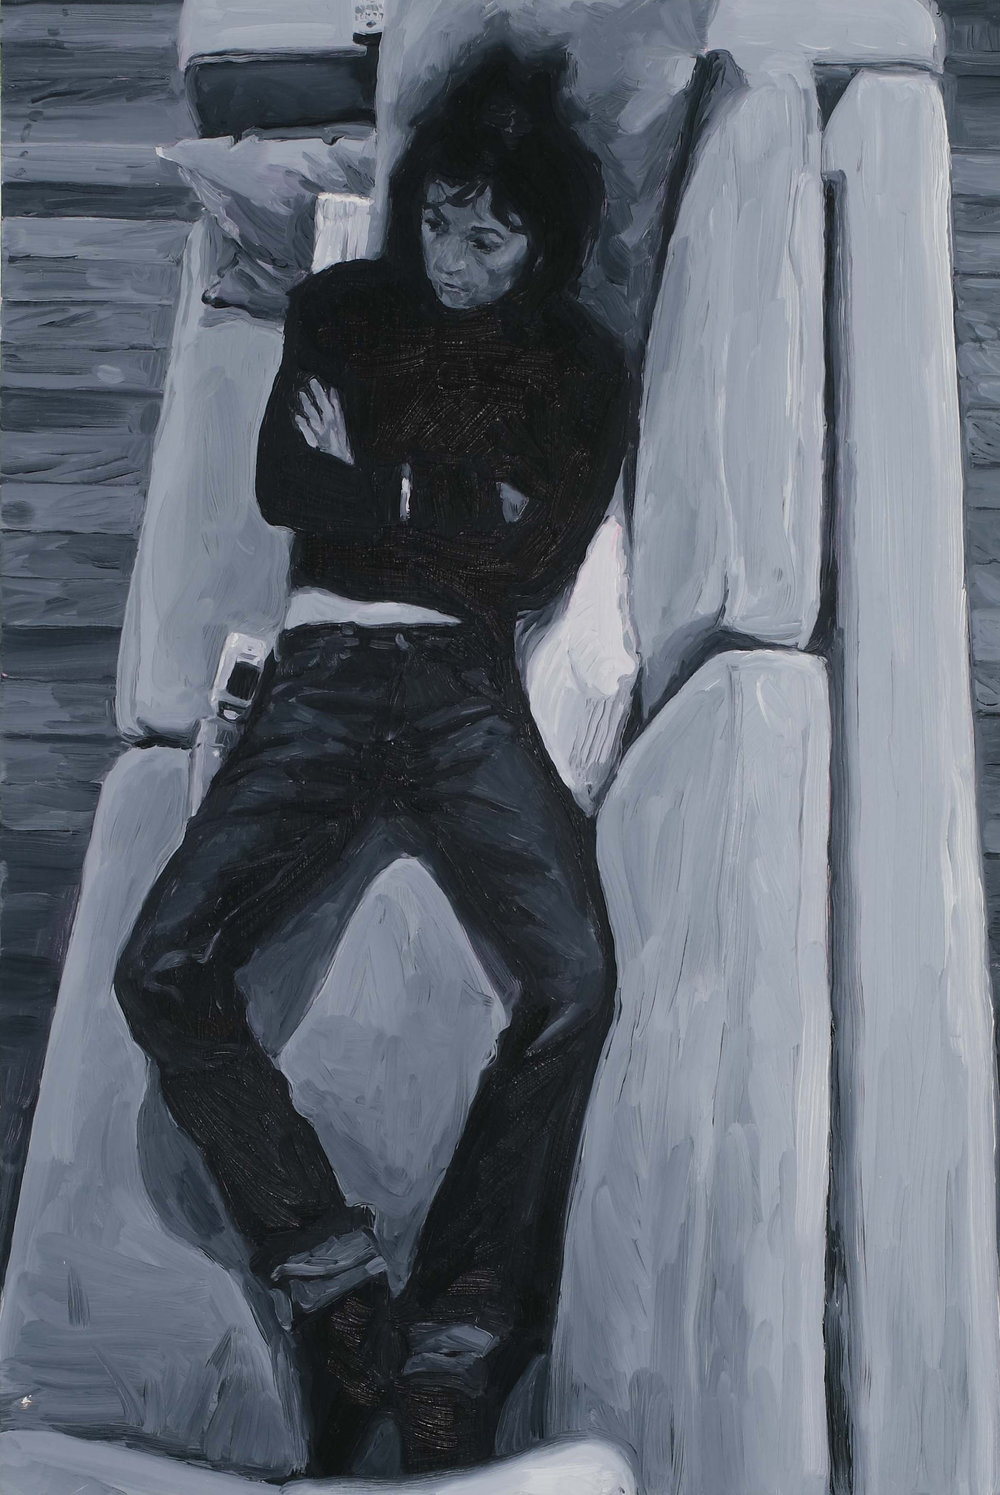 Reclining TV, oil on board, 60 x 40 cm, 2008.